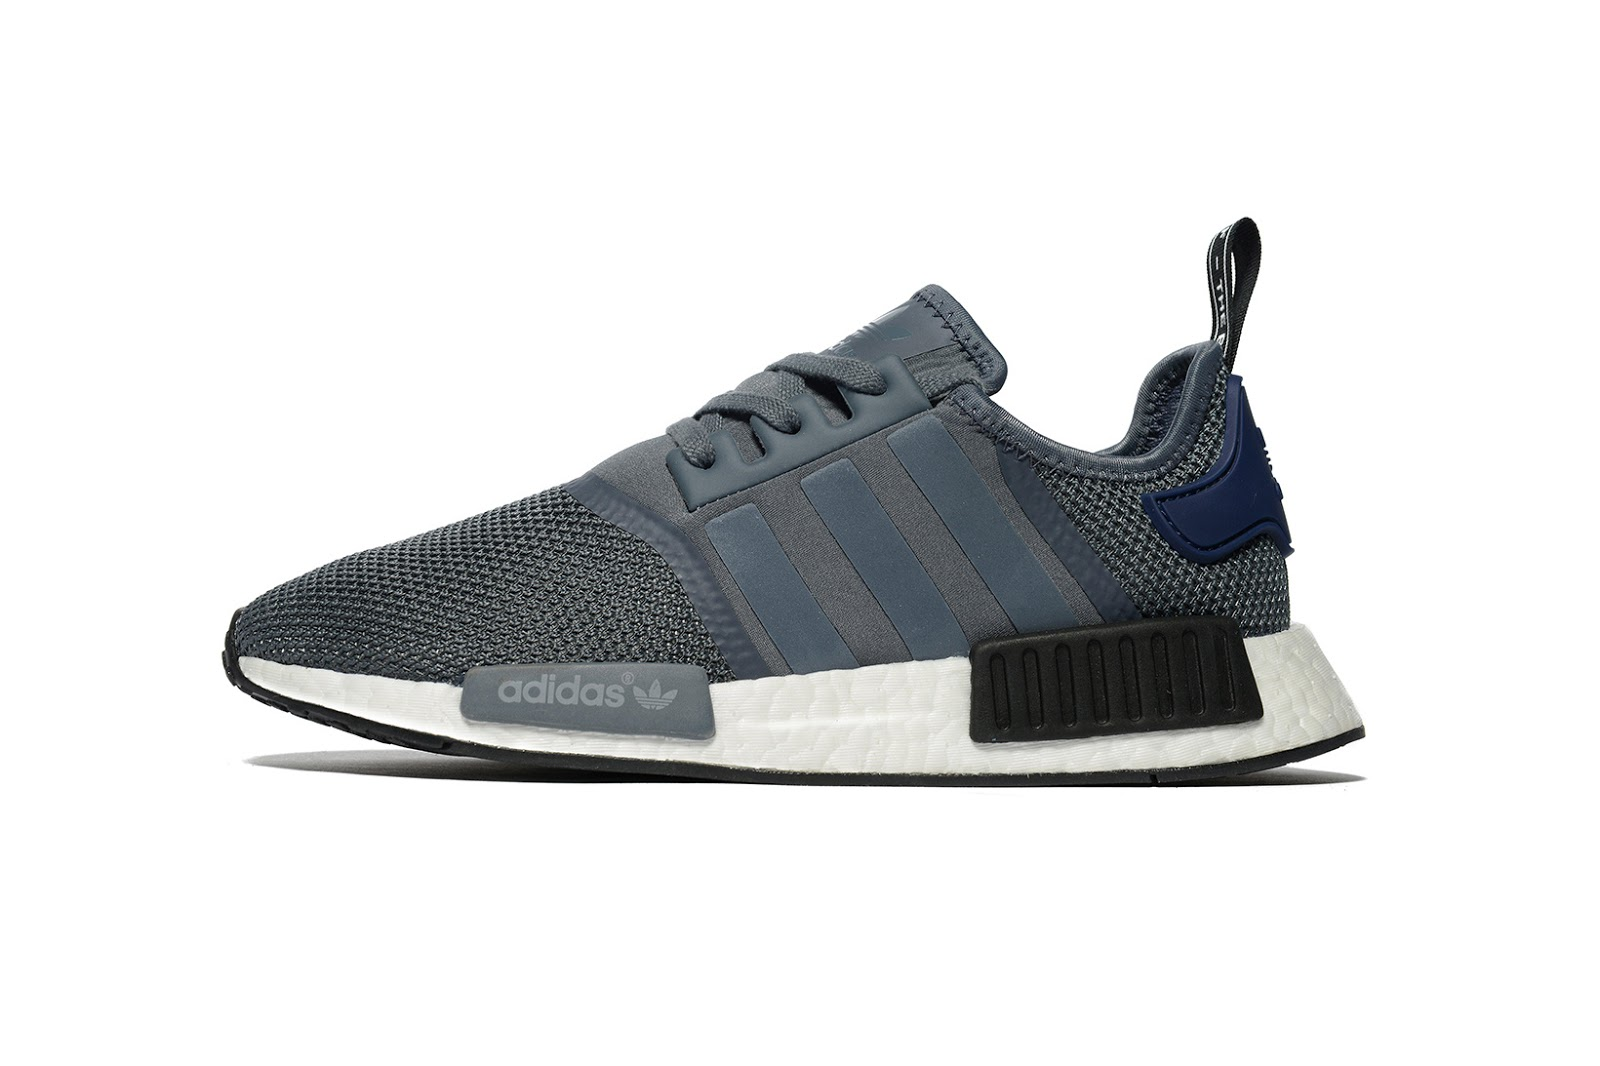 Back in November, JD Sports dropped a trio of exclusive takes on the NMD  XR1 and now the UK-based retailer is back with yet another limited-edition  adi ...